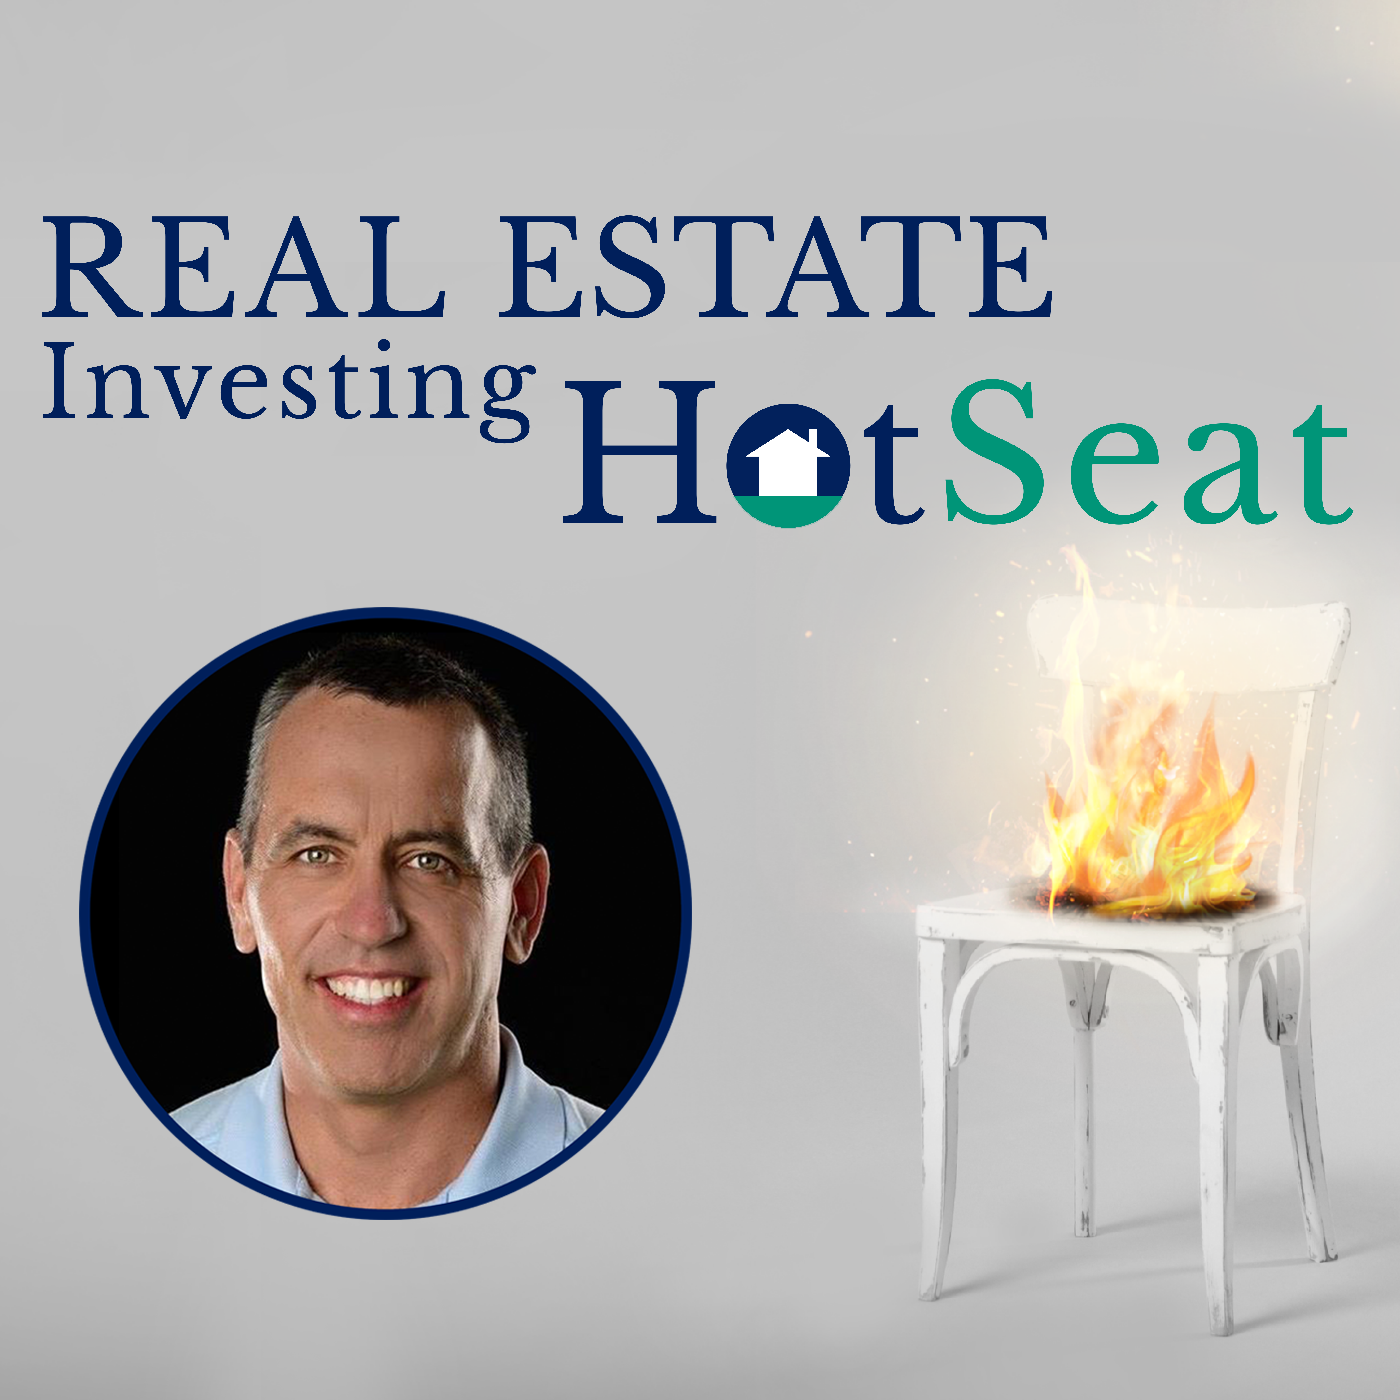 Real Estate Investing Hot Seat   If you want bigger pockets listen